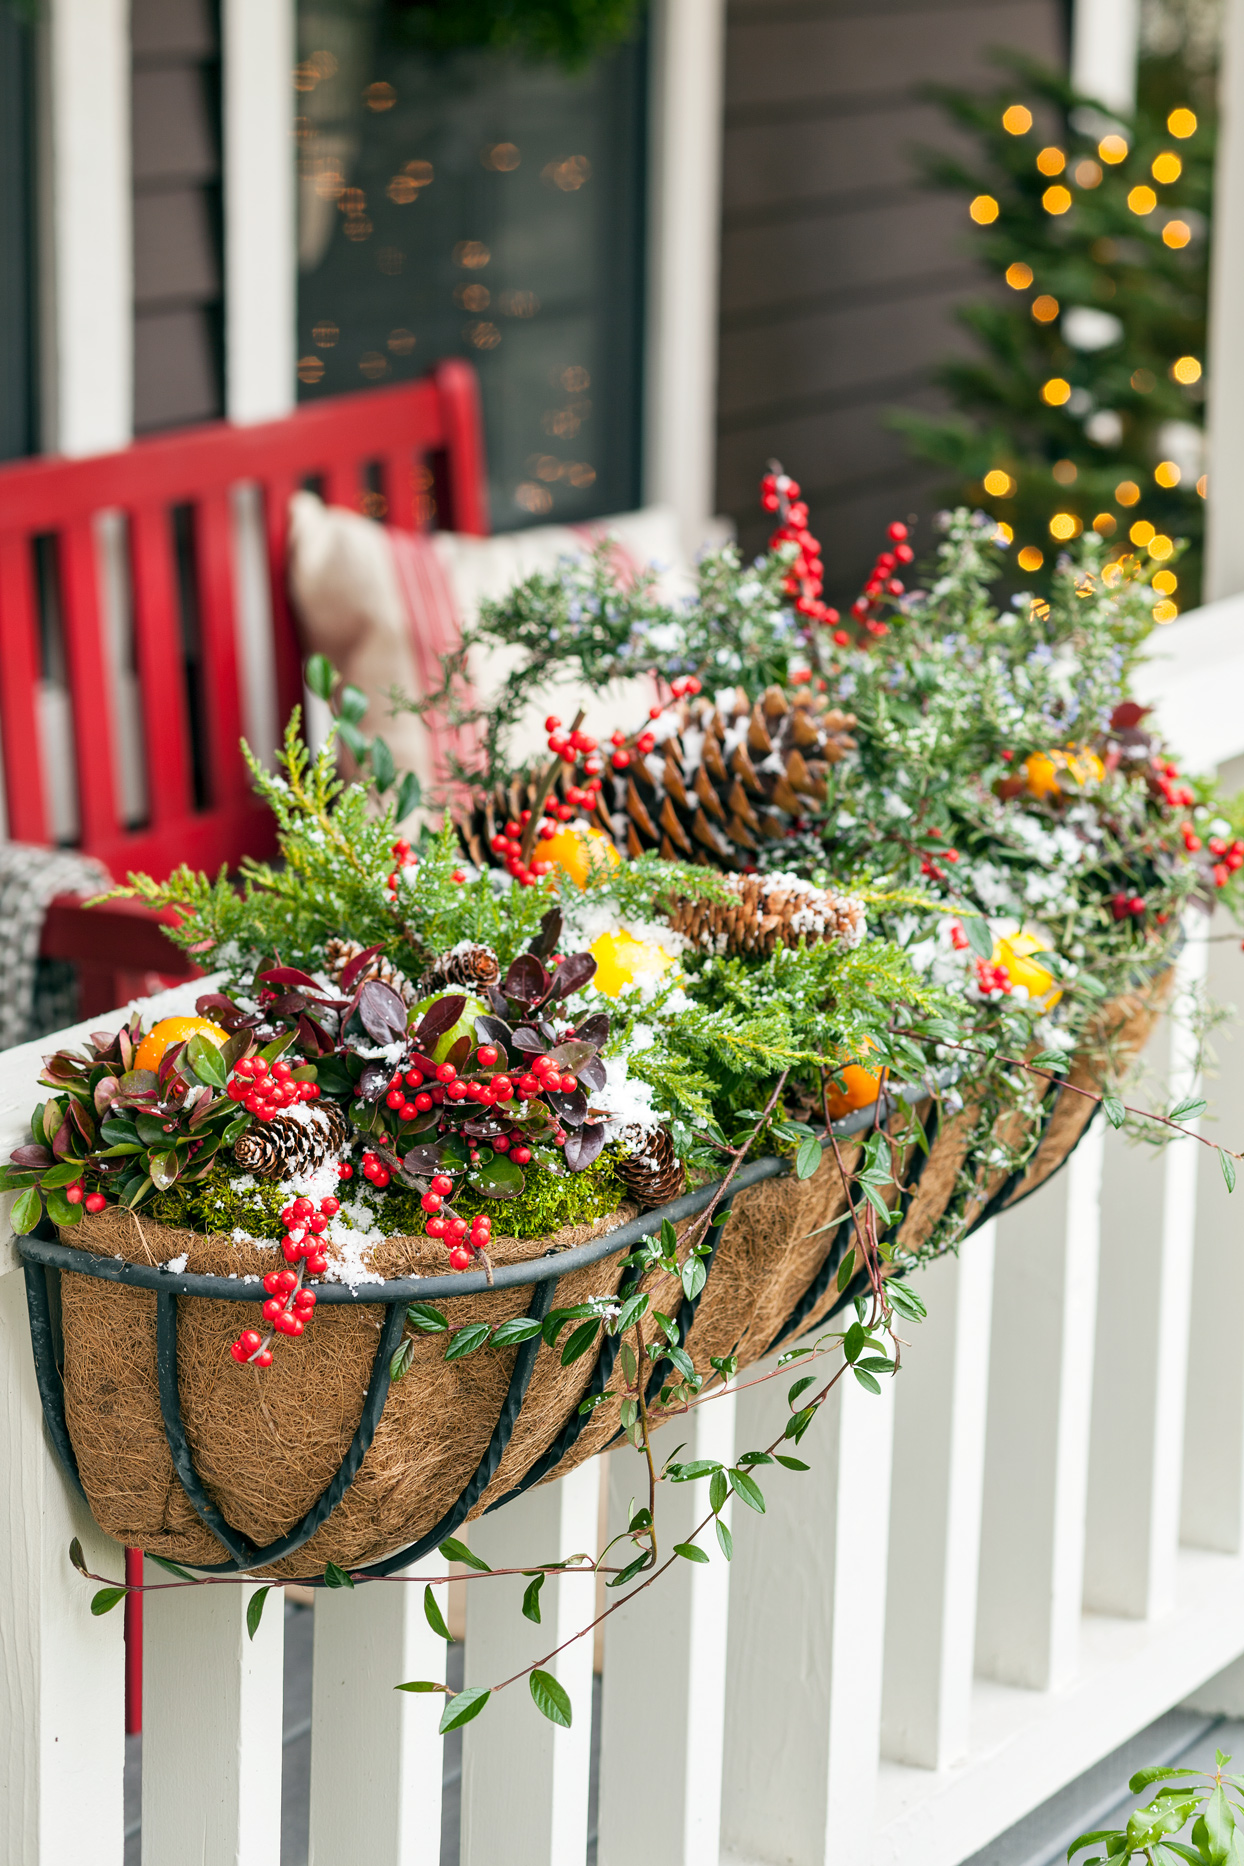 porch railing decorated with festive planter